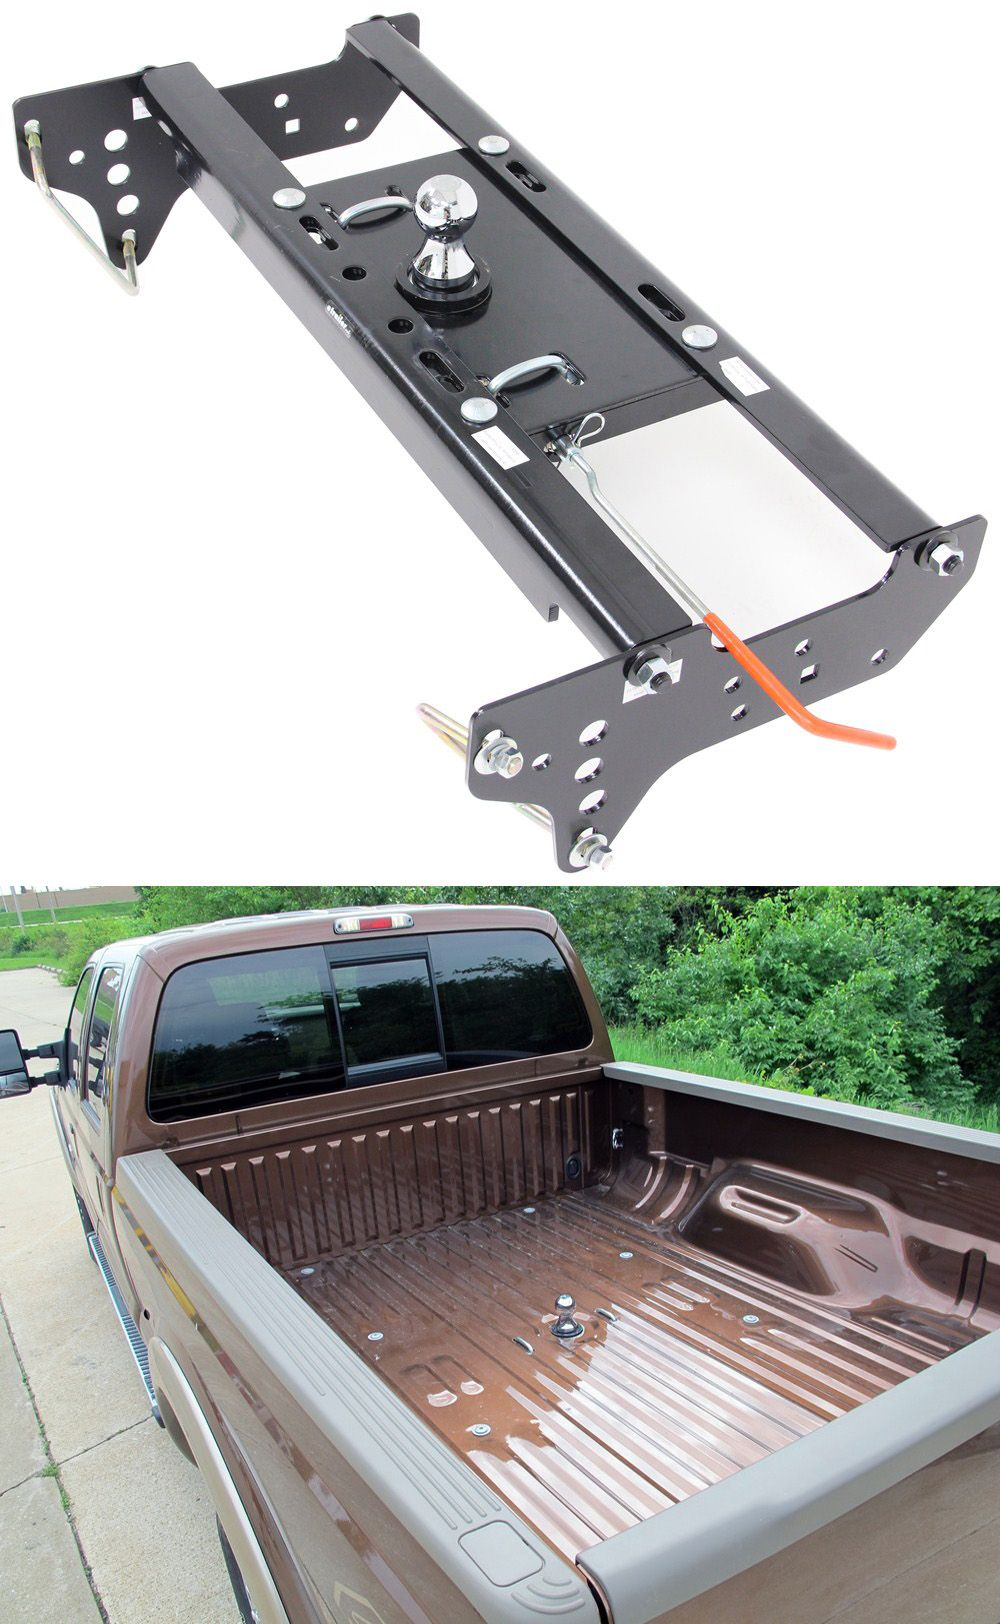 small resolution of for your f 250 f 350 underbed gooseneck trailer hitch with installation kit wheel well accessible handle makes it easy to engage and disengage